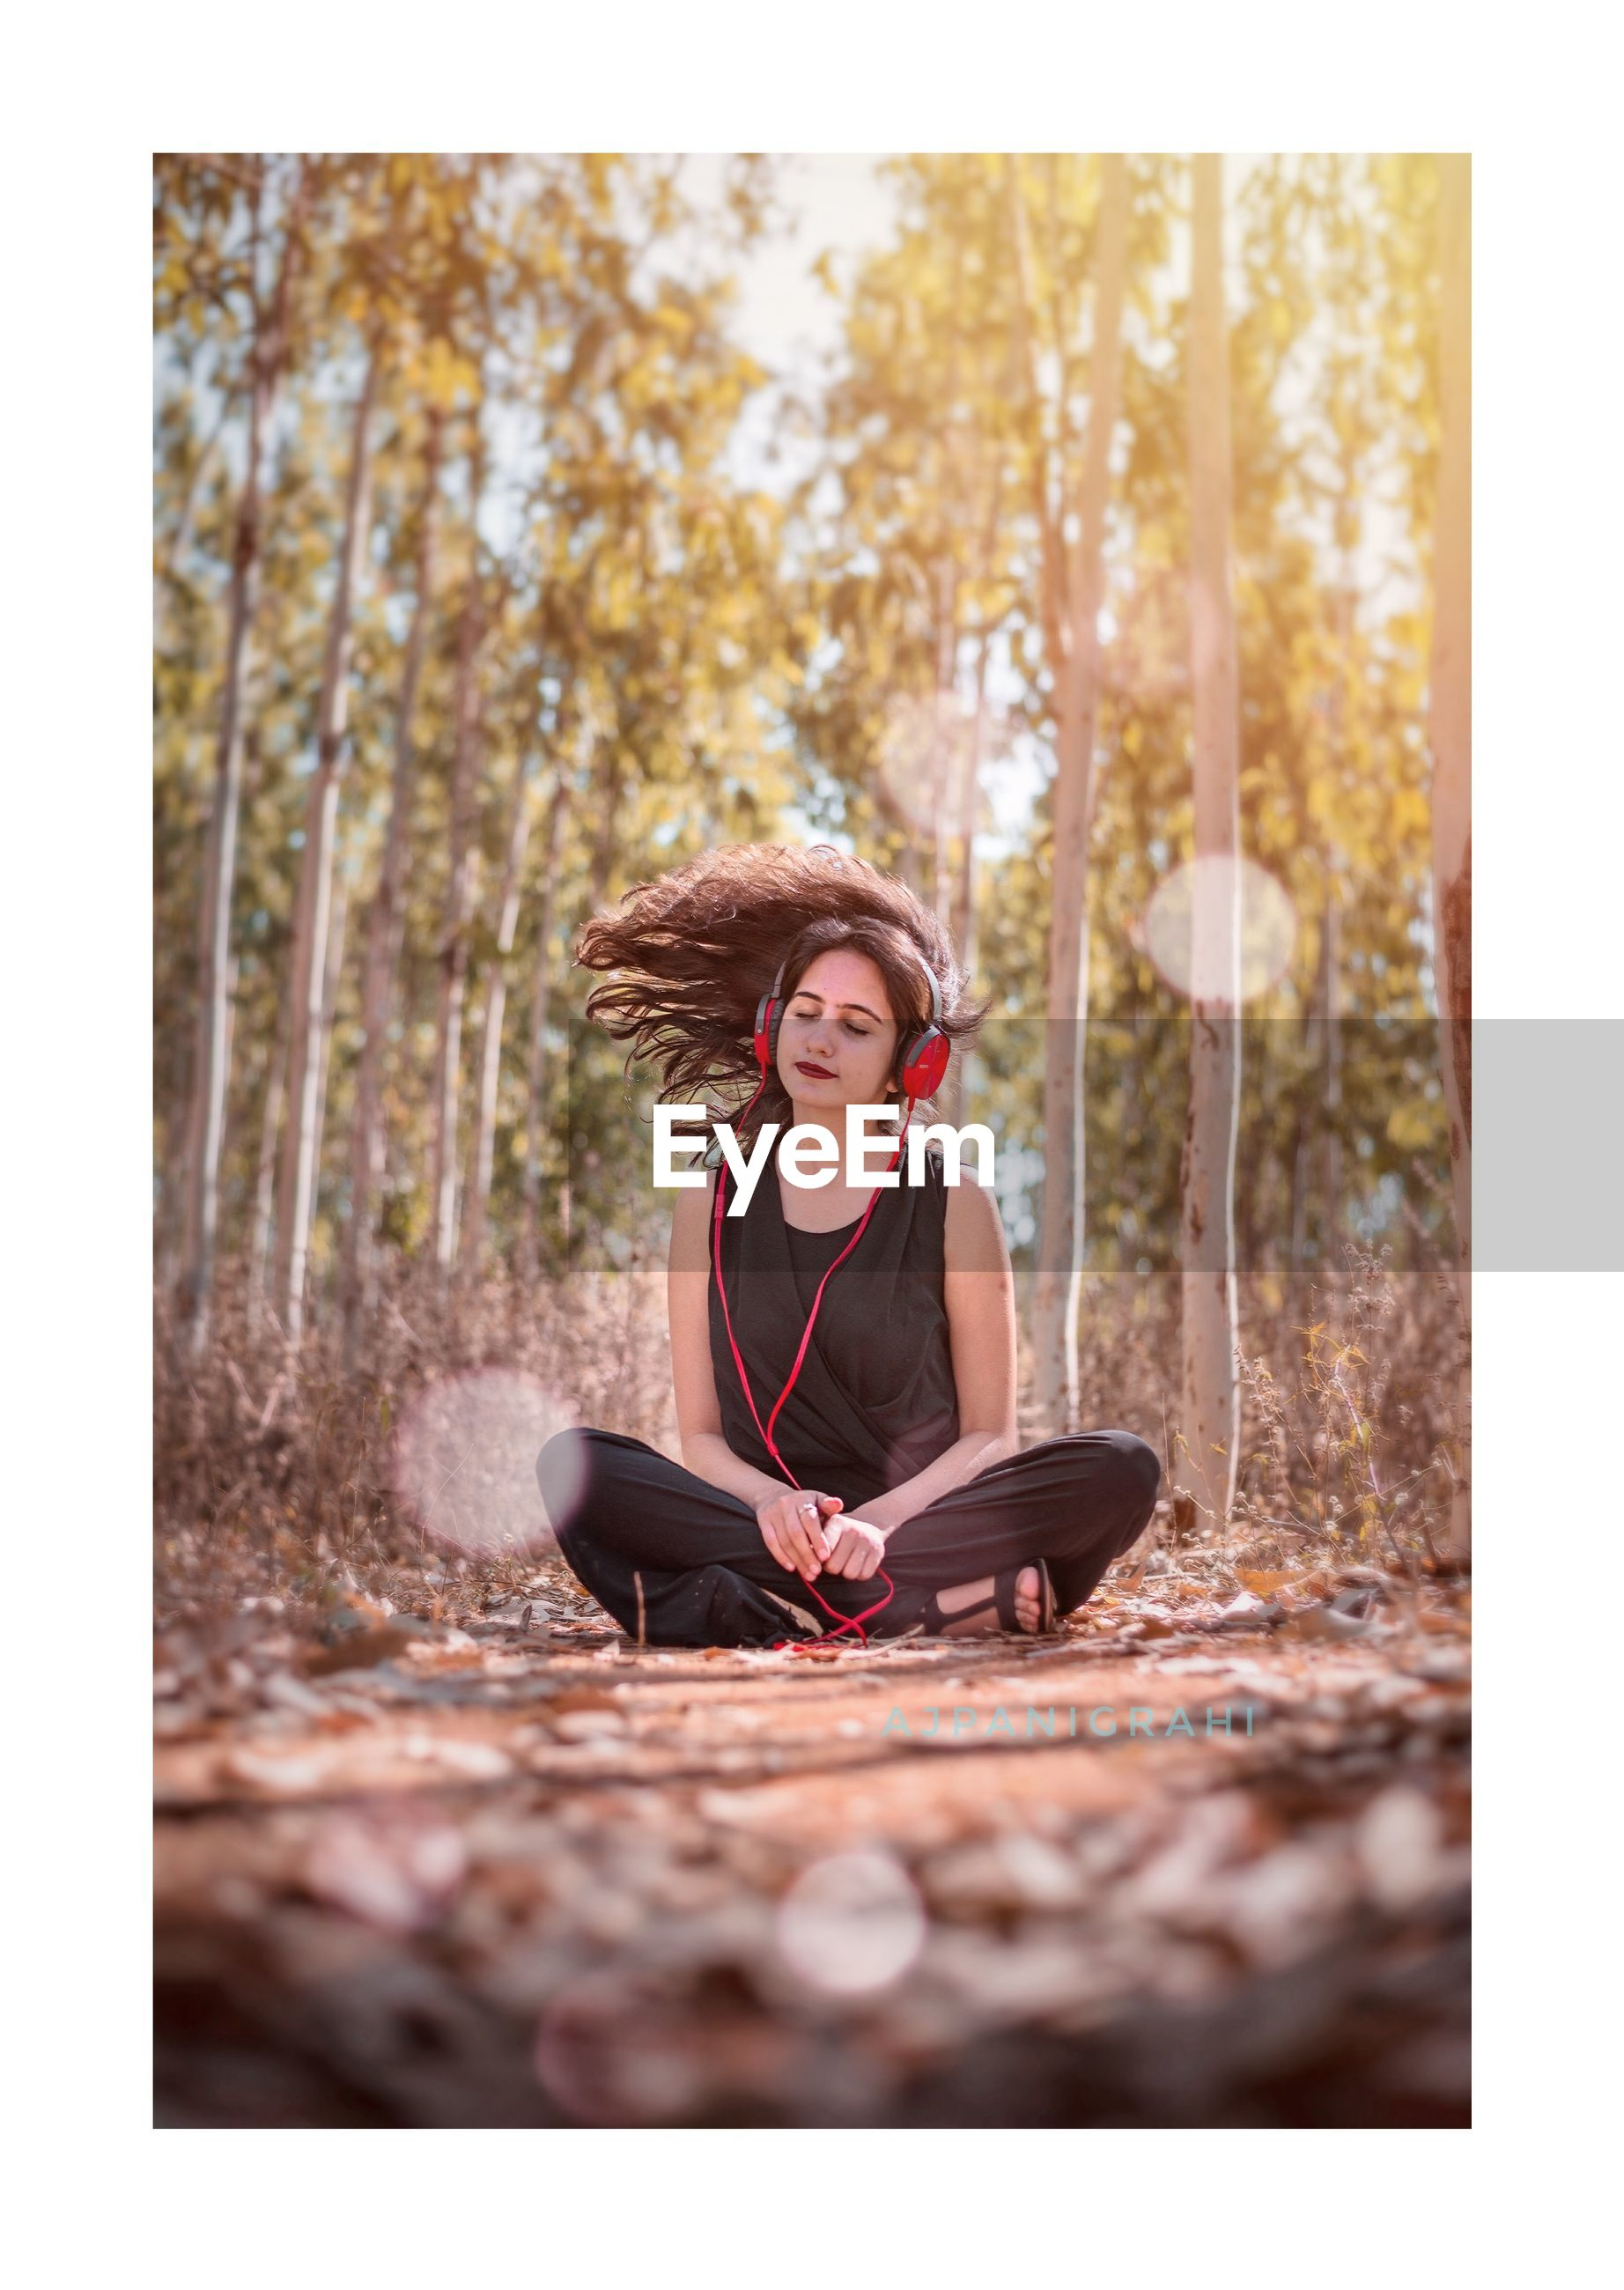 Woman with tousled hair listening to music while sitting against trees in forest